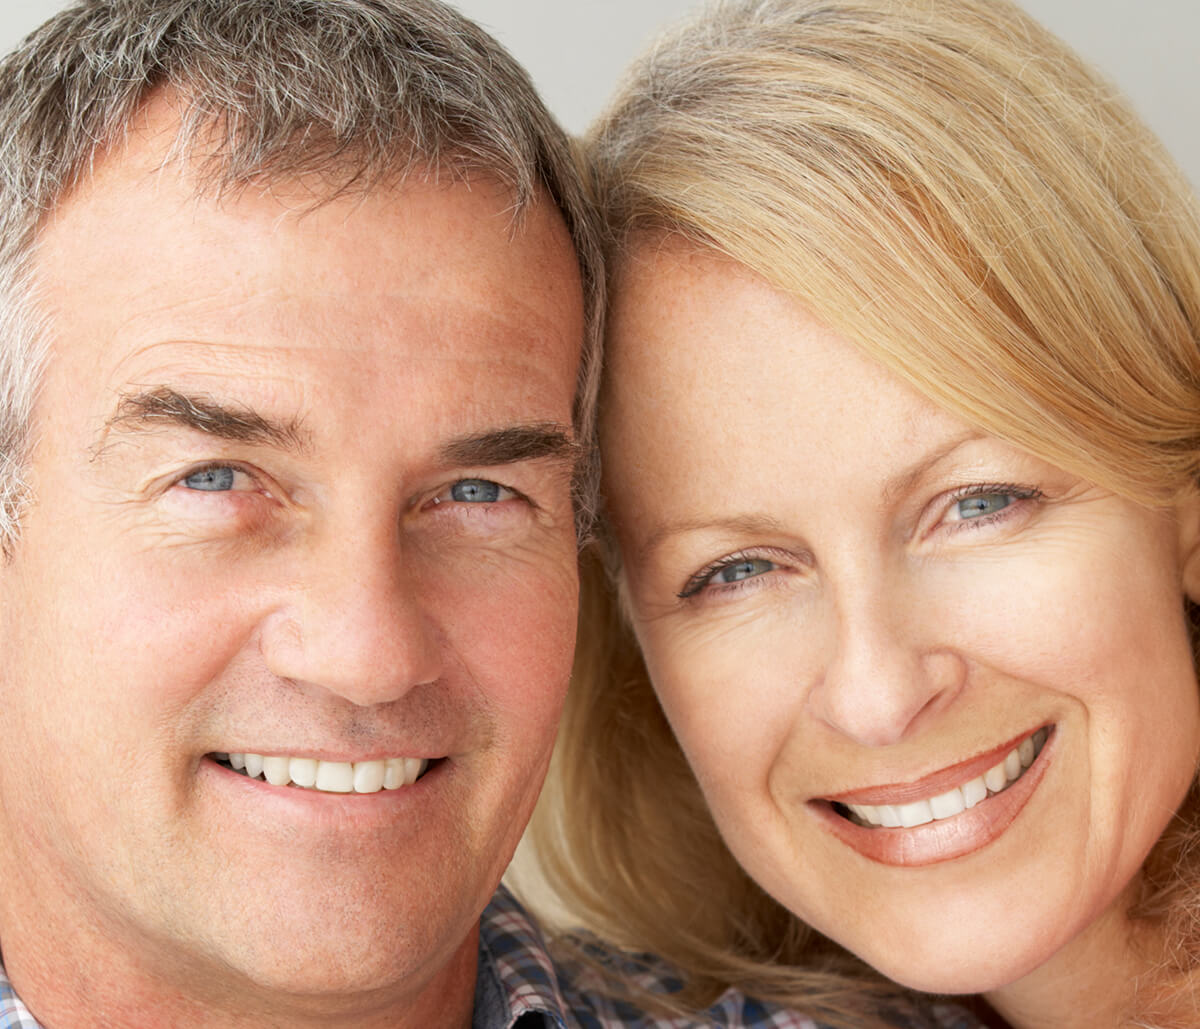 Houston, TX dentist offers cost-effective restorations, including crowns and bridges for teeth